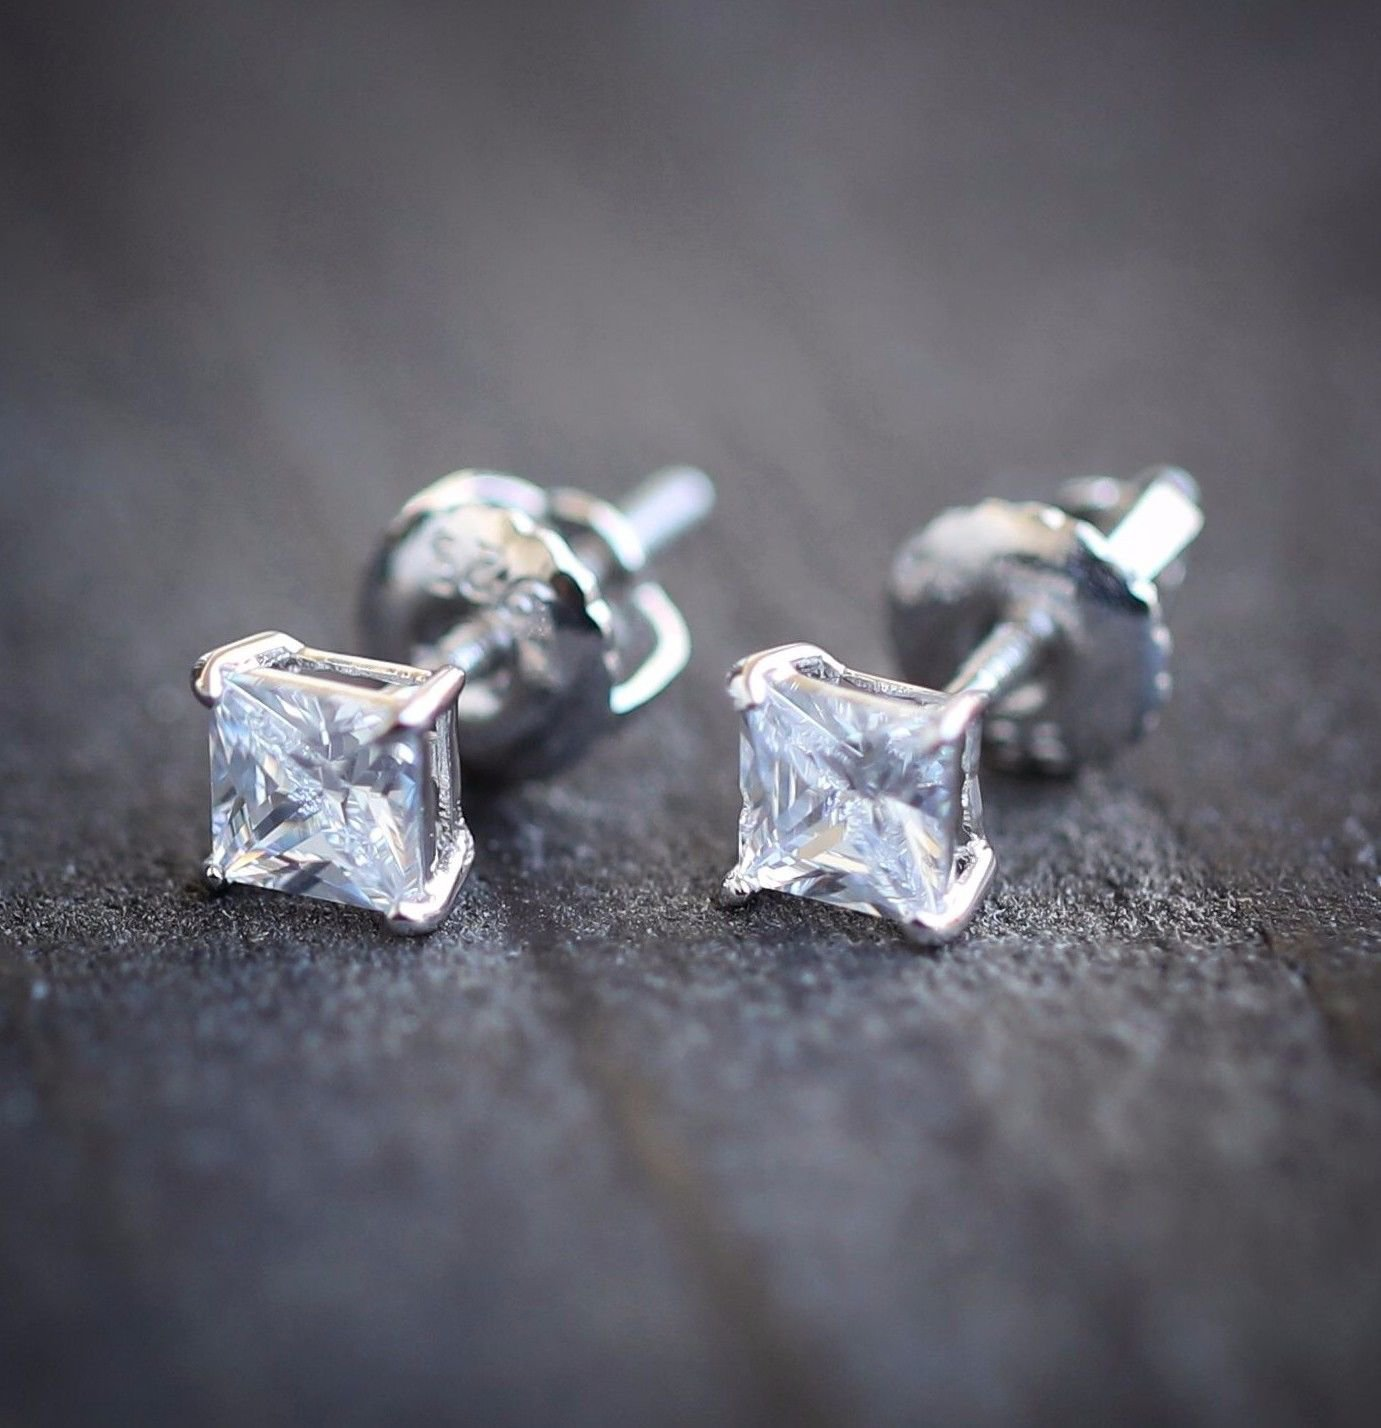 White Gold Small Princess Cut Screw Back Mens Stud Earrings